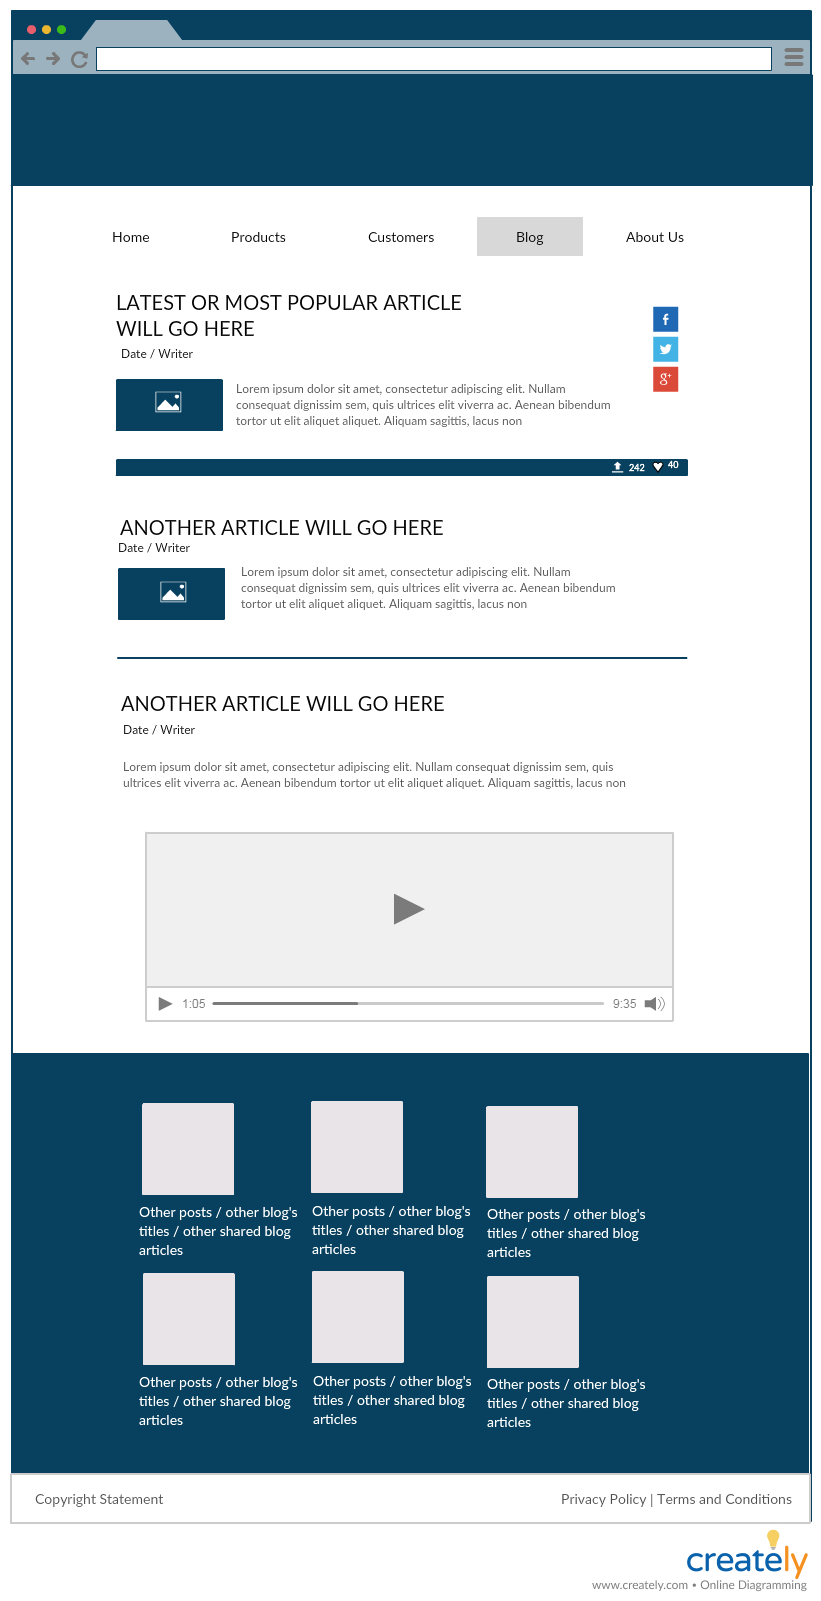 User interface wireframe for Business Analysis